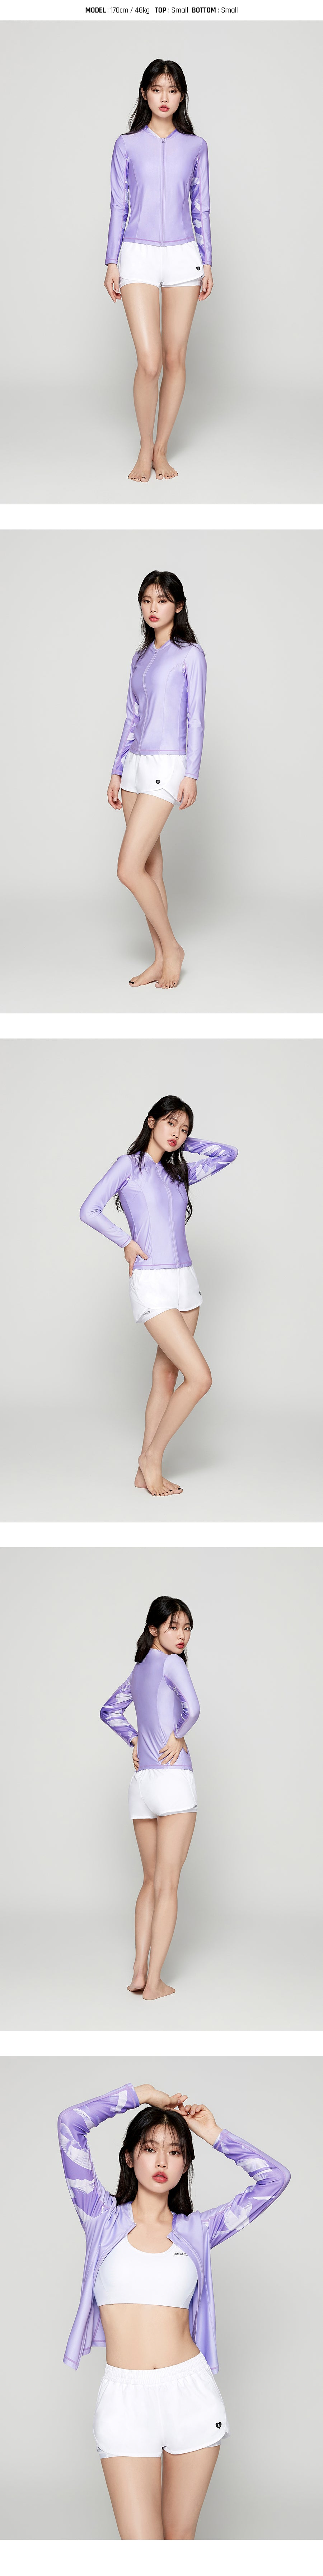 Barrel Womens Tina Zip Up Rashguard-PALE PURPLE